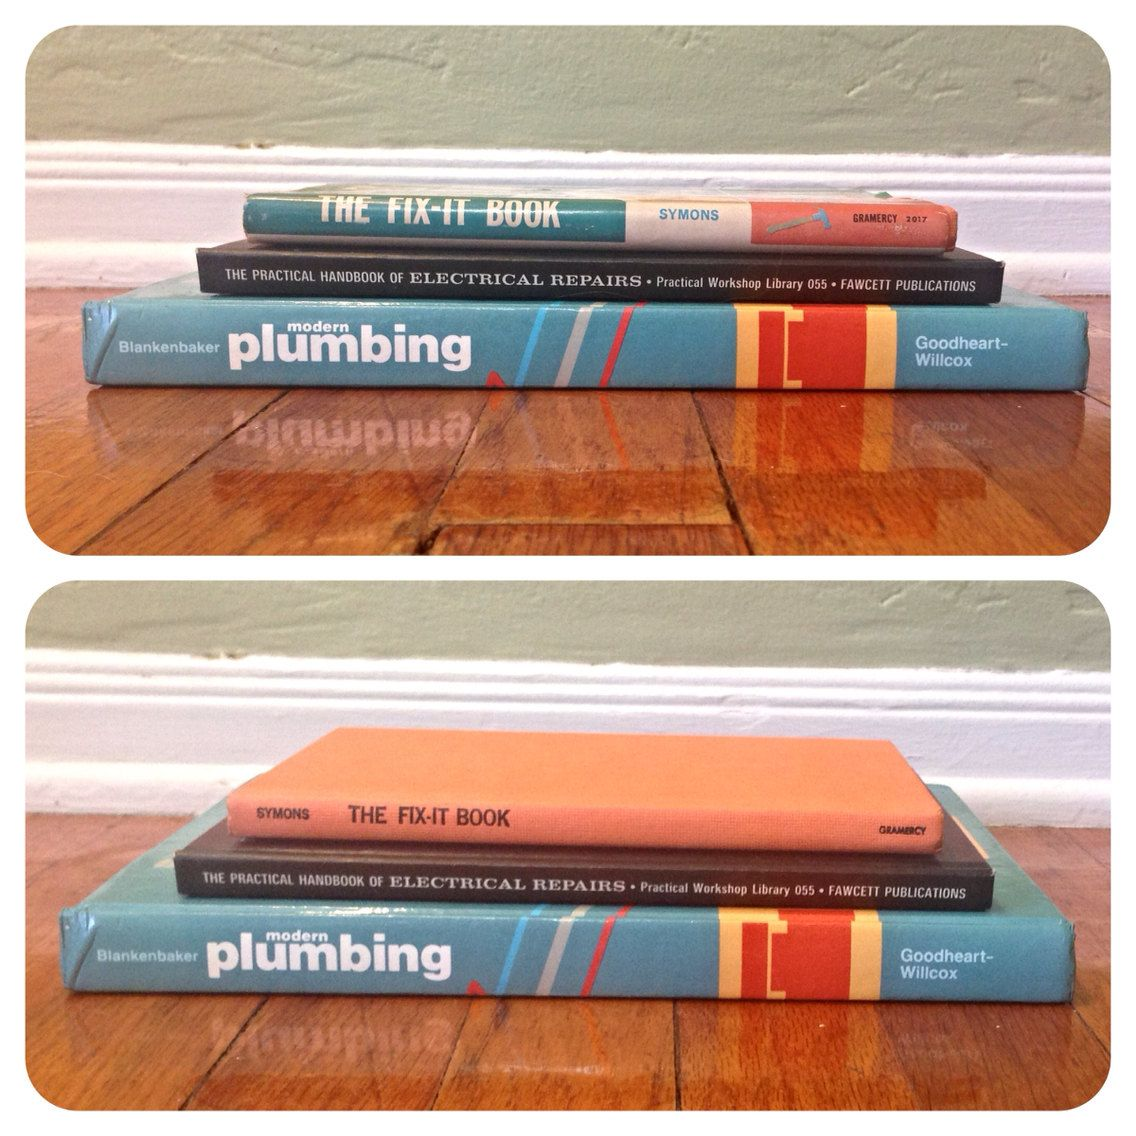 Vintage 1960s set of 3 home repair fix it books blue and orange items similar to vintage 1960s set of 3 home repair fix it books blue and orange plumbing electrical do it yourself diy mr fix it handy man vintage retro solutioingenieria Gallery